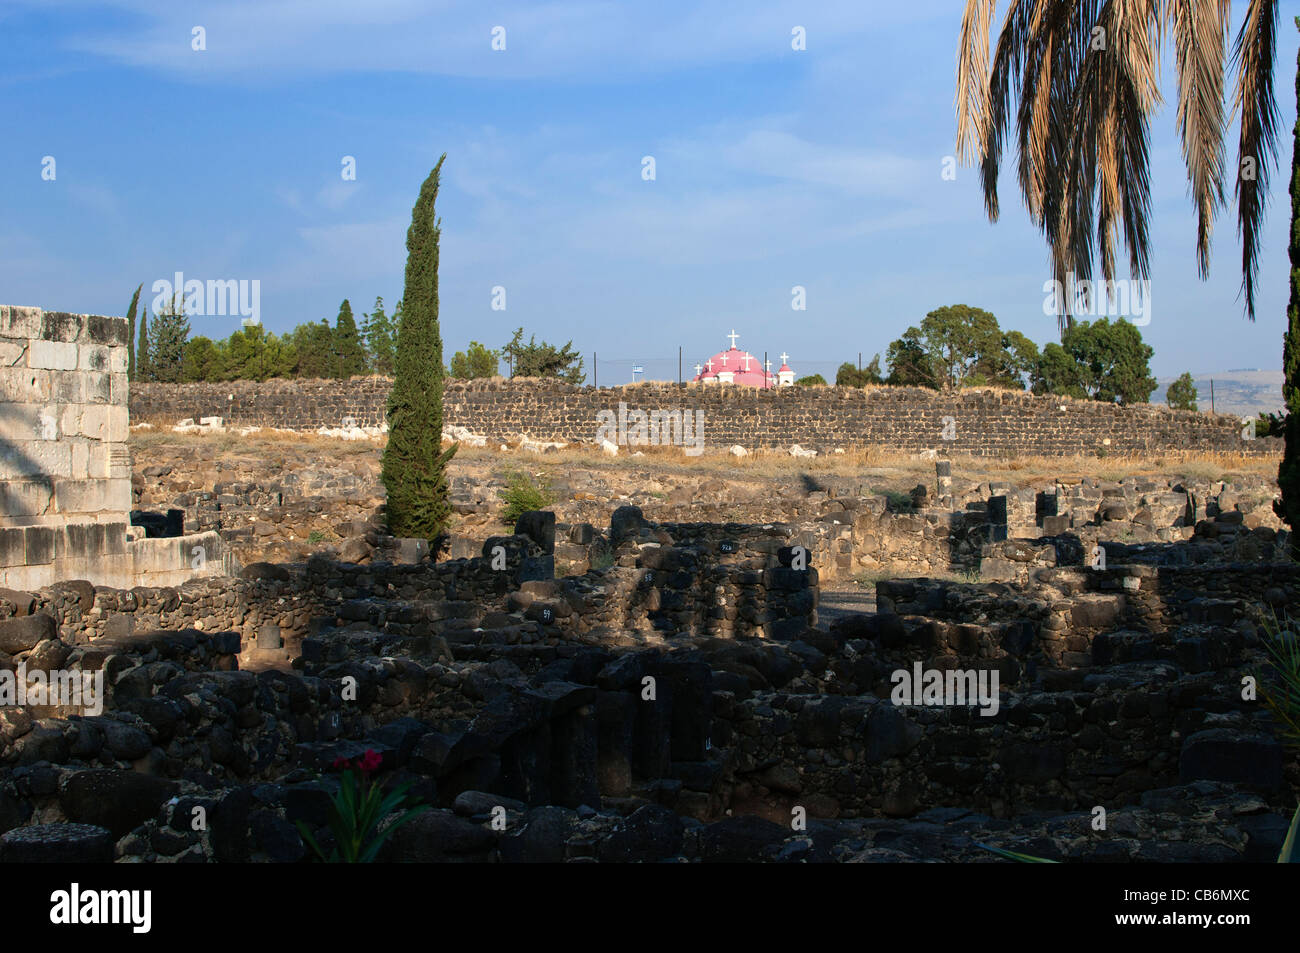 Capernaum ruins with view Greek Orthodox Church in the distance,Galilee, Israel,Asia, Middle East - Stock Image